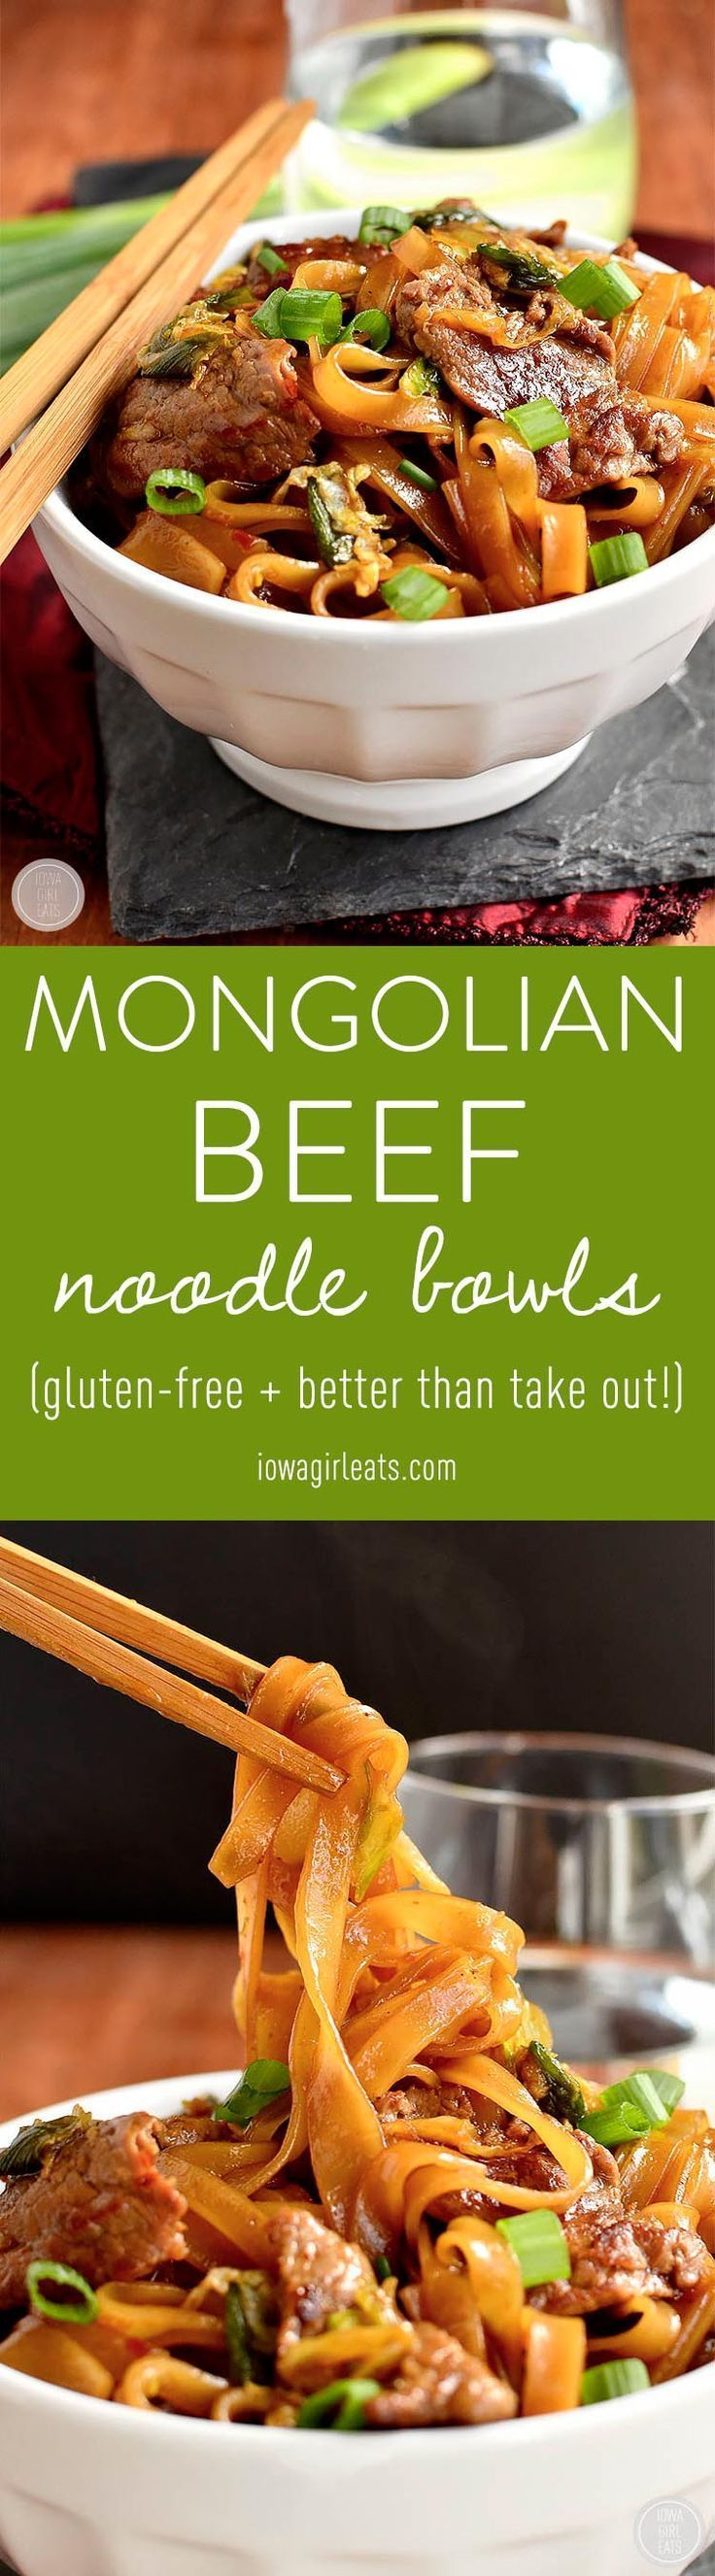 Mongolian Beef Noodle Bowls taste just like take out, swapping rice for chewy rice noodles! #glutenfree   iowagirleats.com